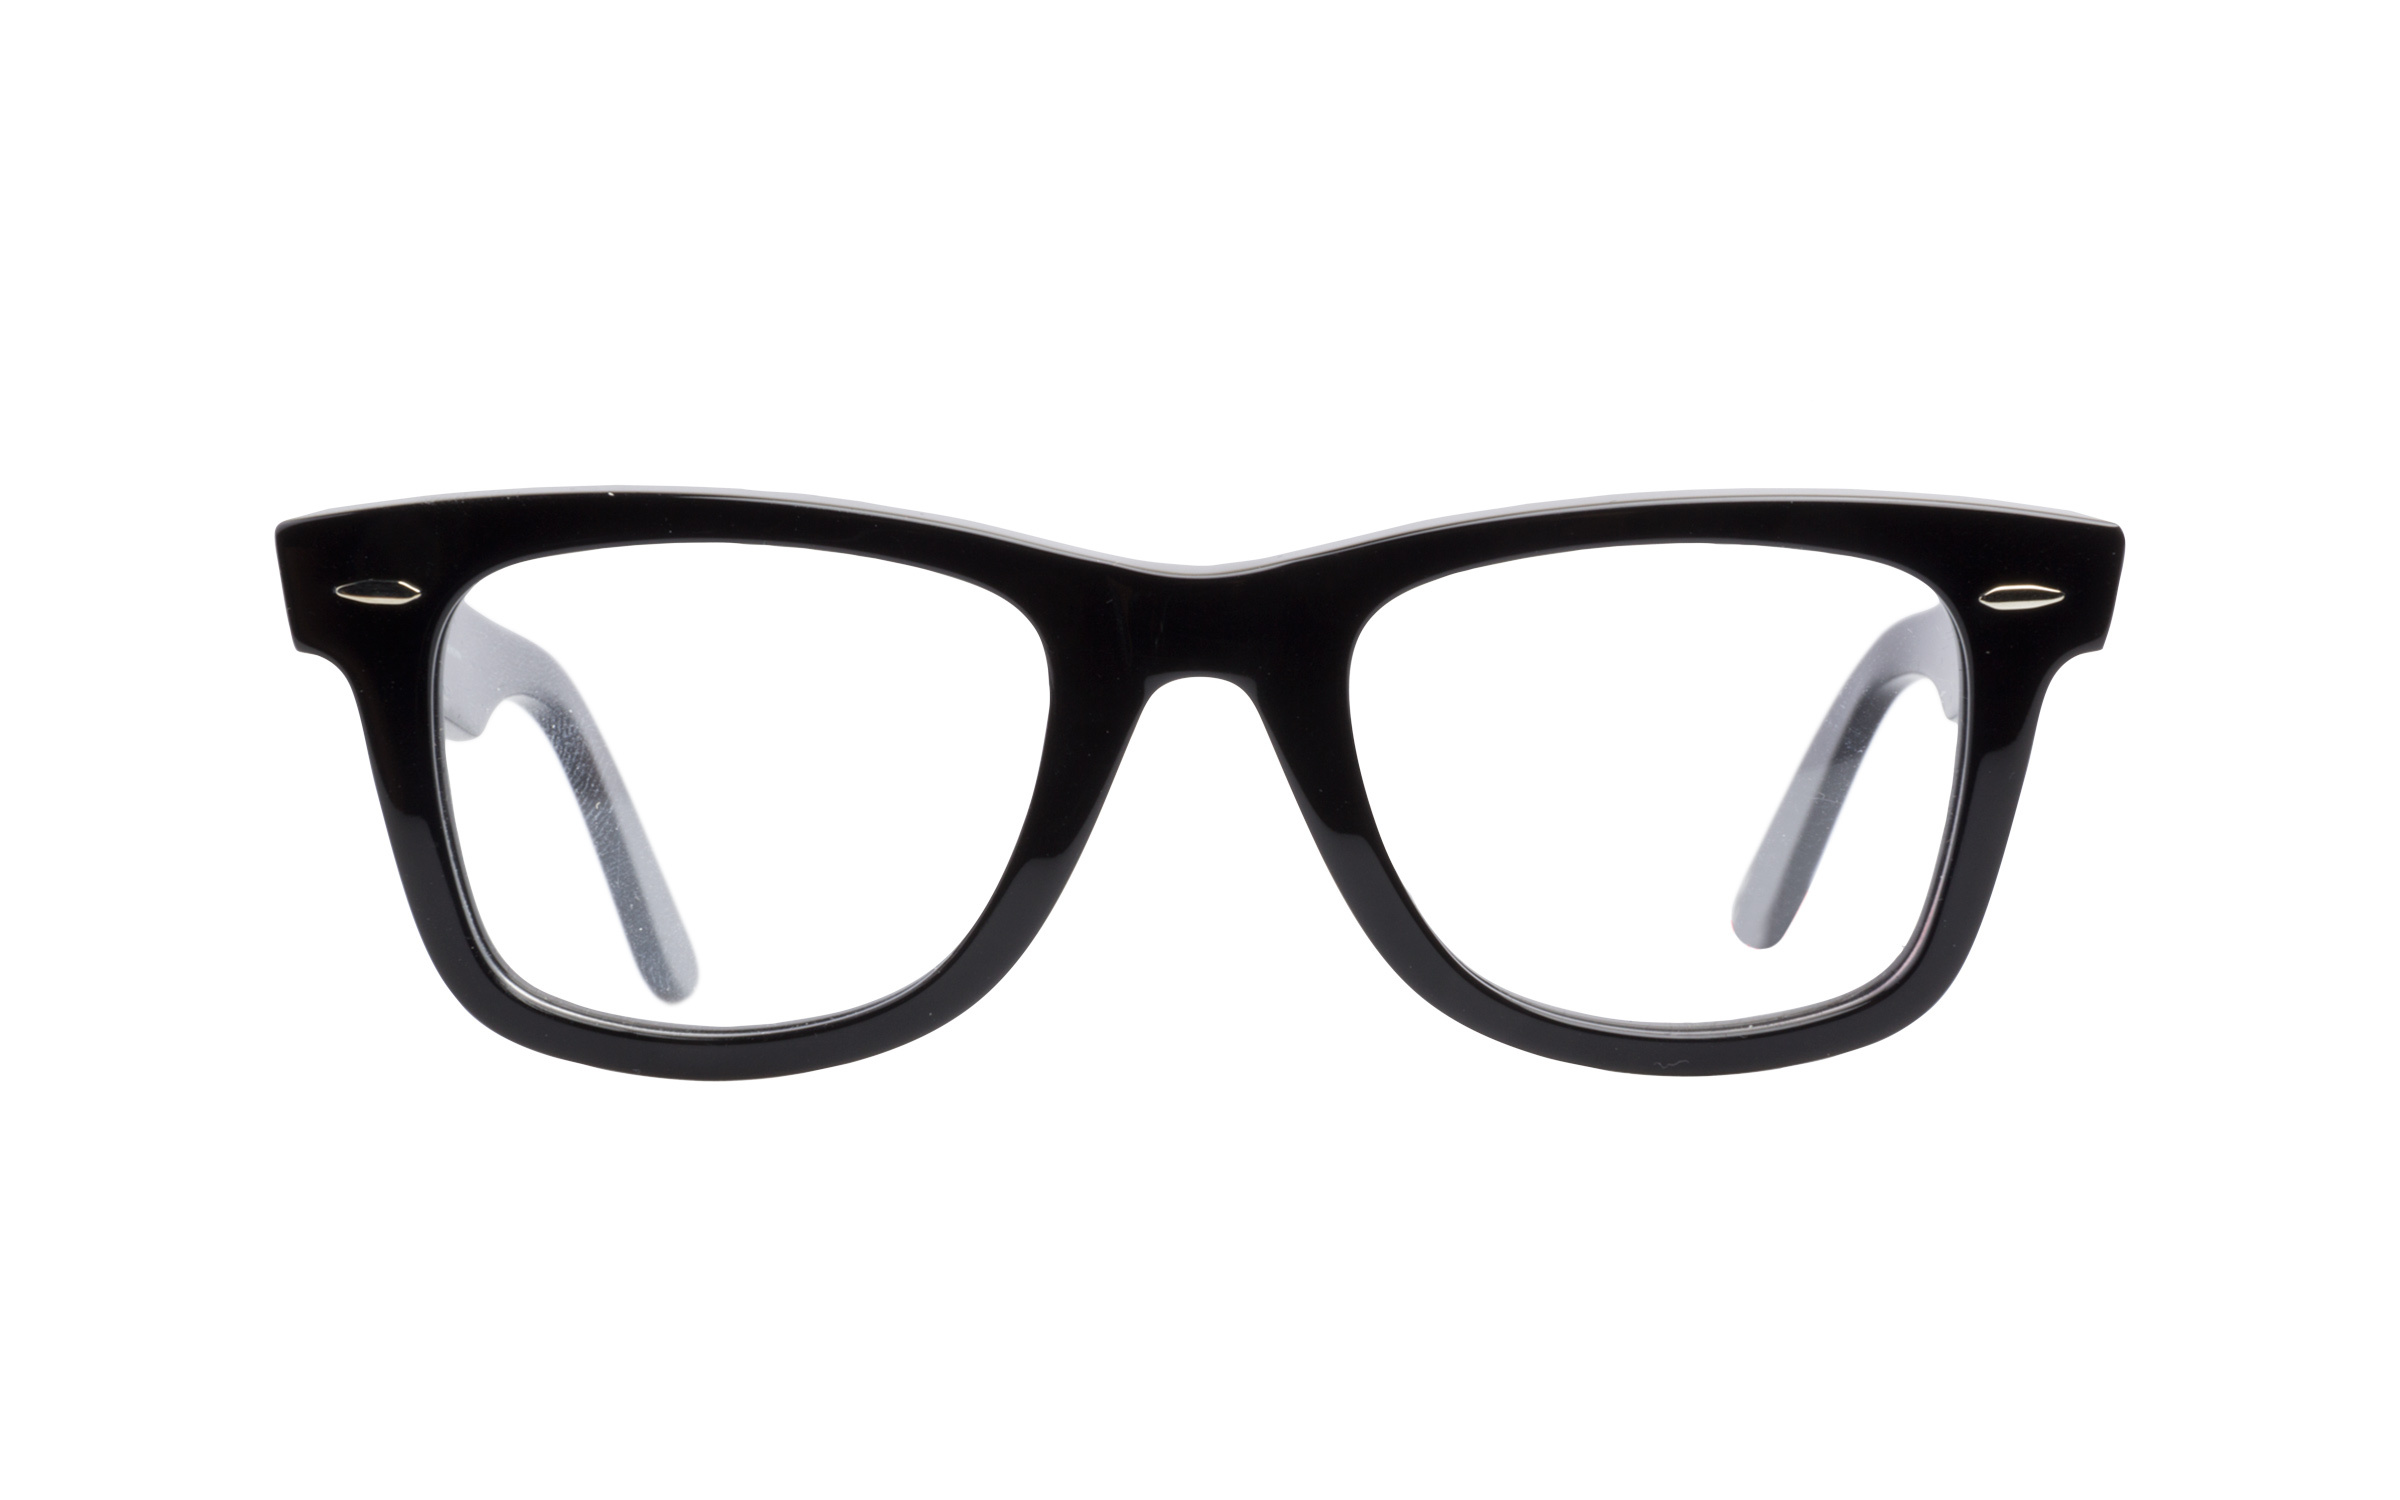 Luxottica Ray-Ban RB5121 2000 Eyeglasses and Frame in Black - Online Coastal